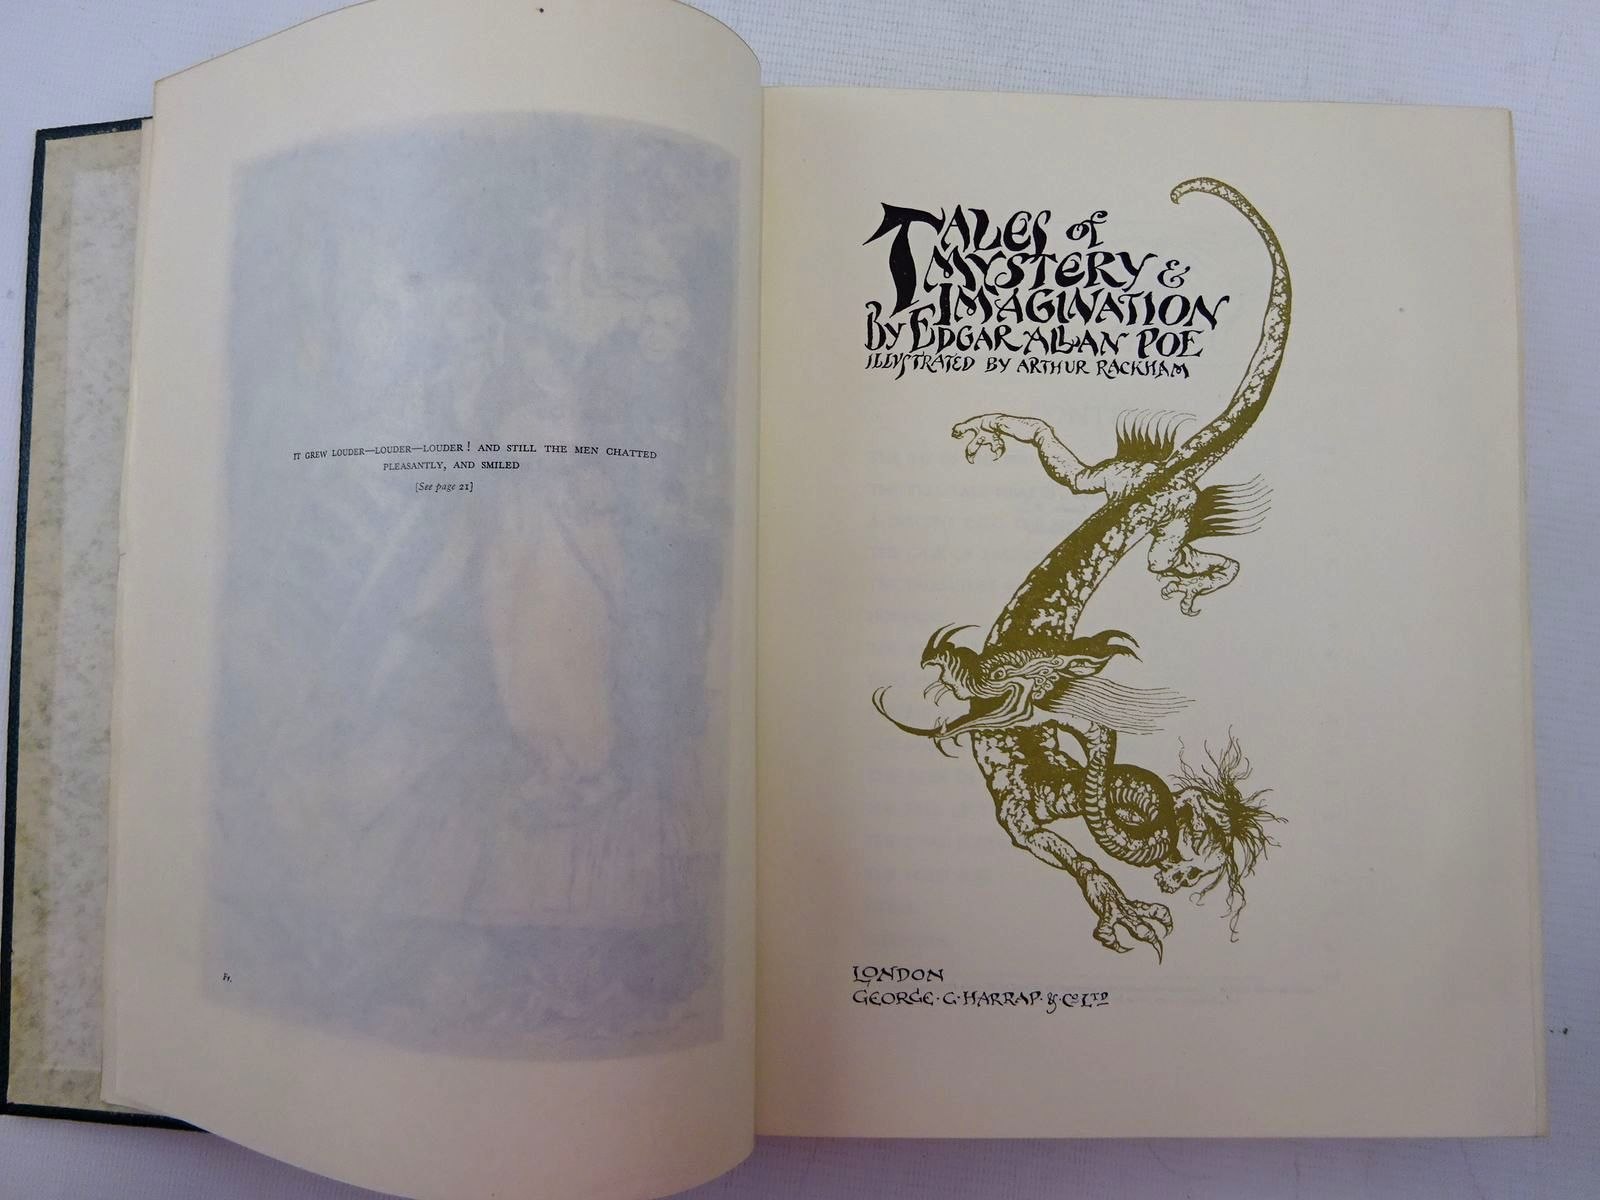 Photo of POE'S TALES OF MYSTERY AND IMAGINATION written by Poe, Edgar Allan illustrated by Rackham, Arthur published by George G. Harrap & Co. Ltd. (STOCK CODE: 2129024)  for sale by Stella & Rose's Books